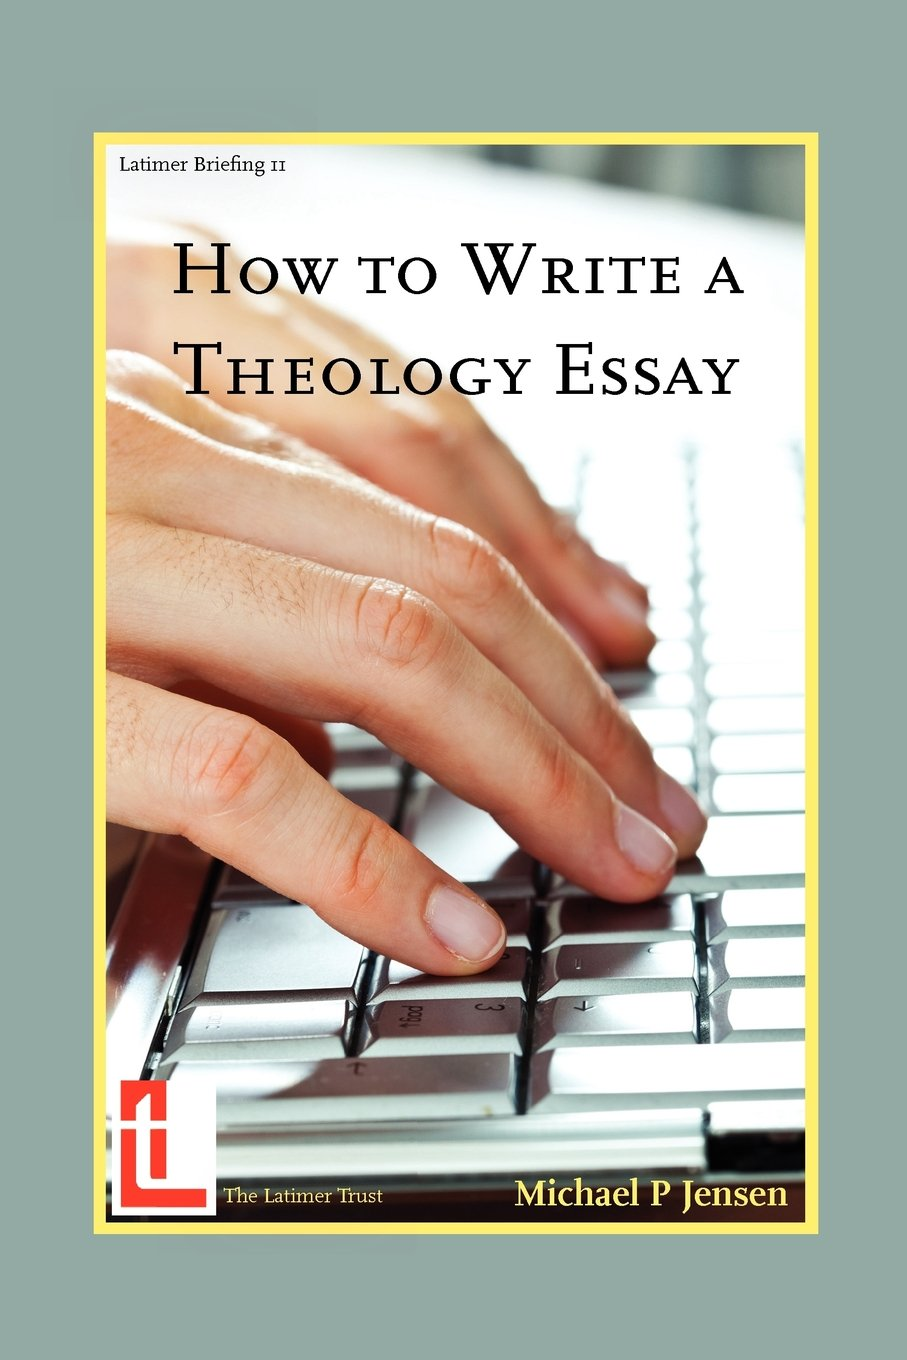 how to write a theology essay latimer briefings co uk how to write a theology essay latimer briefings co uk michael p jensen 9781906327125 books